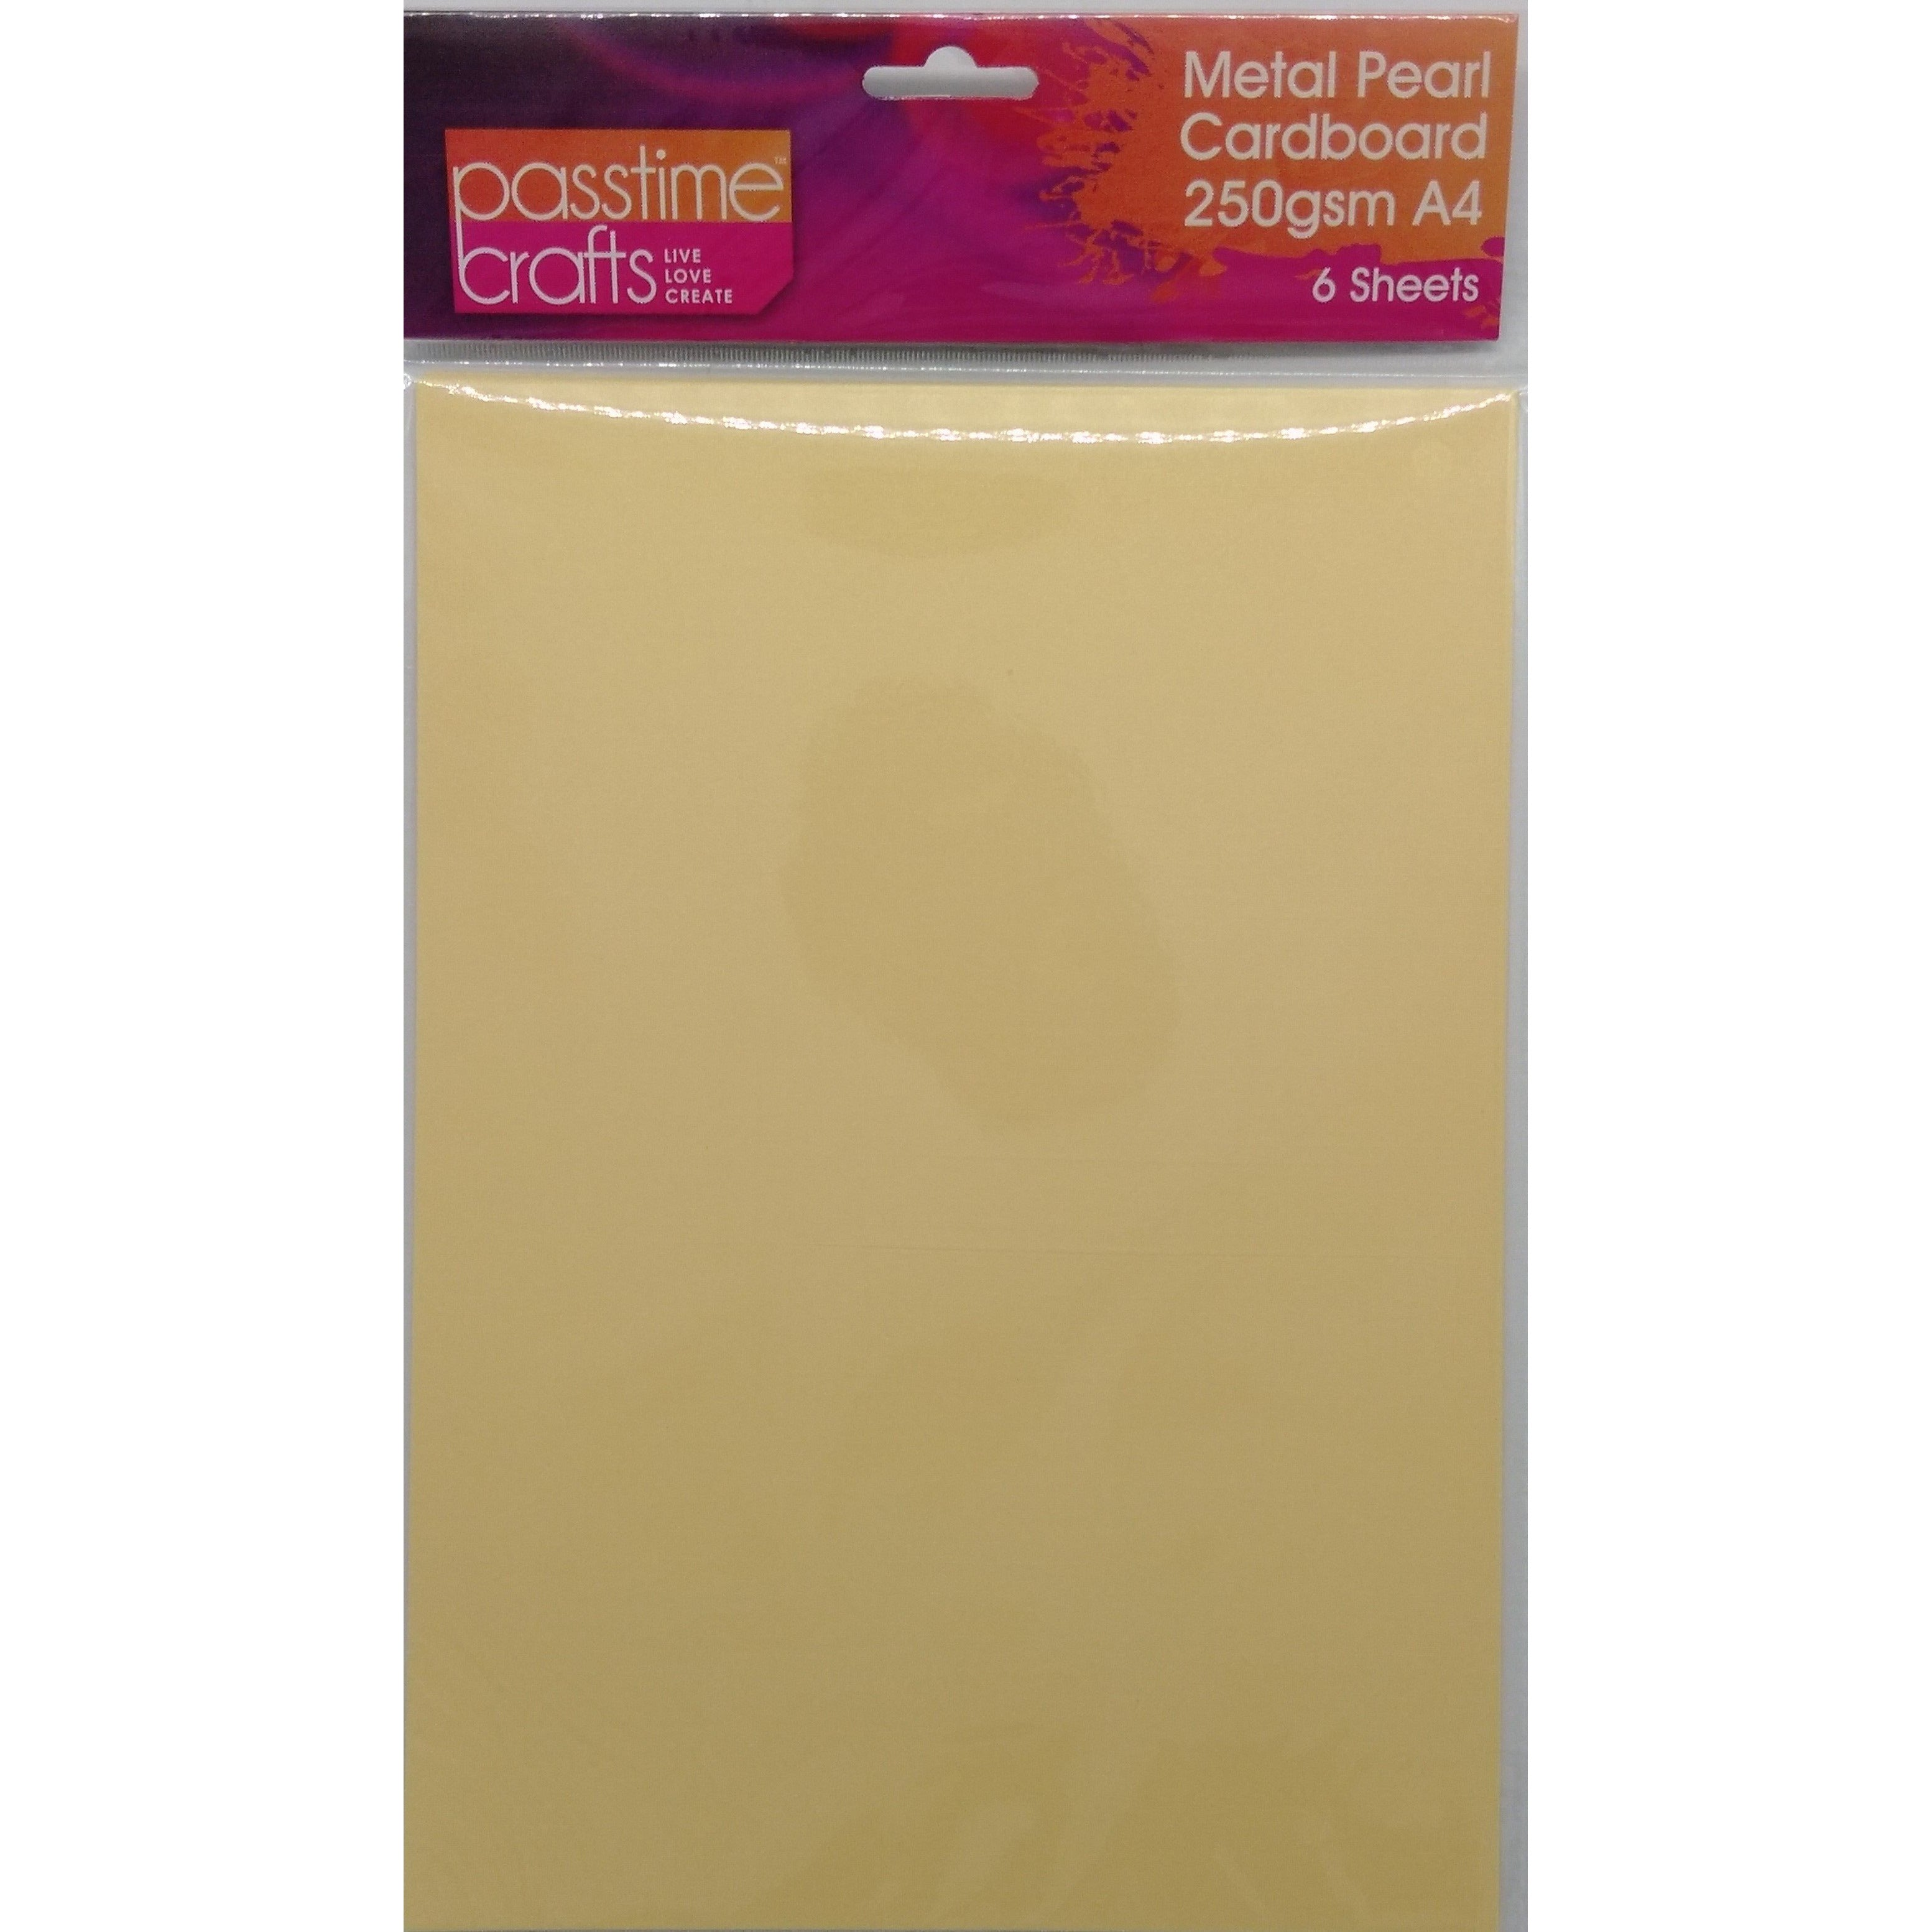 Metal Pearl Cardboard 250gsm A4 Yellow 6 Pieces